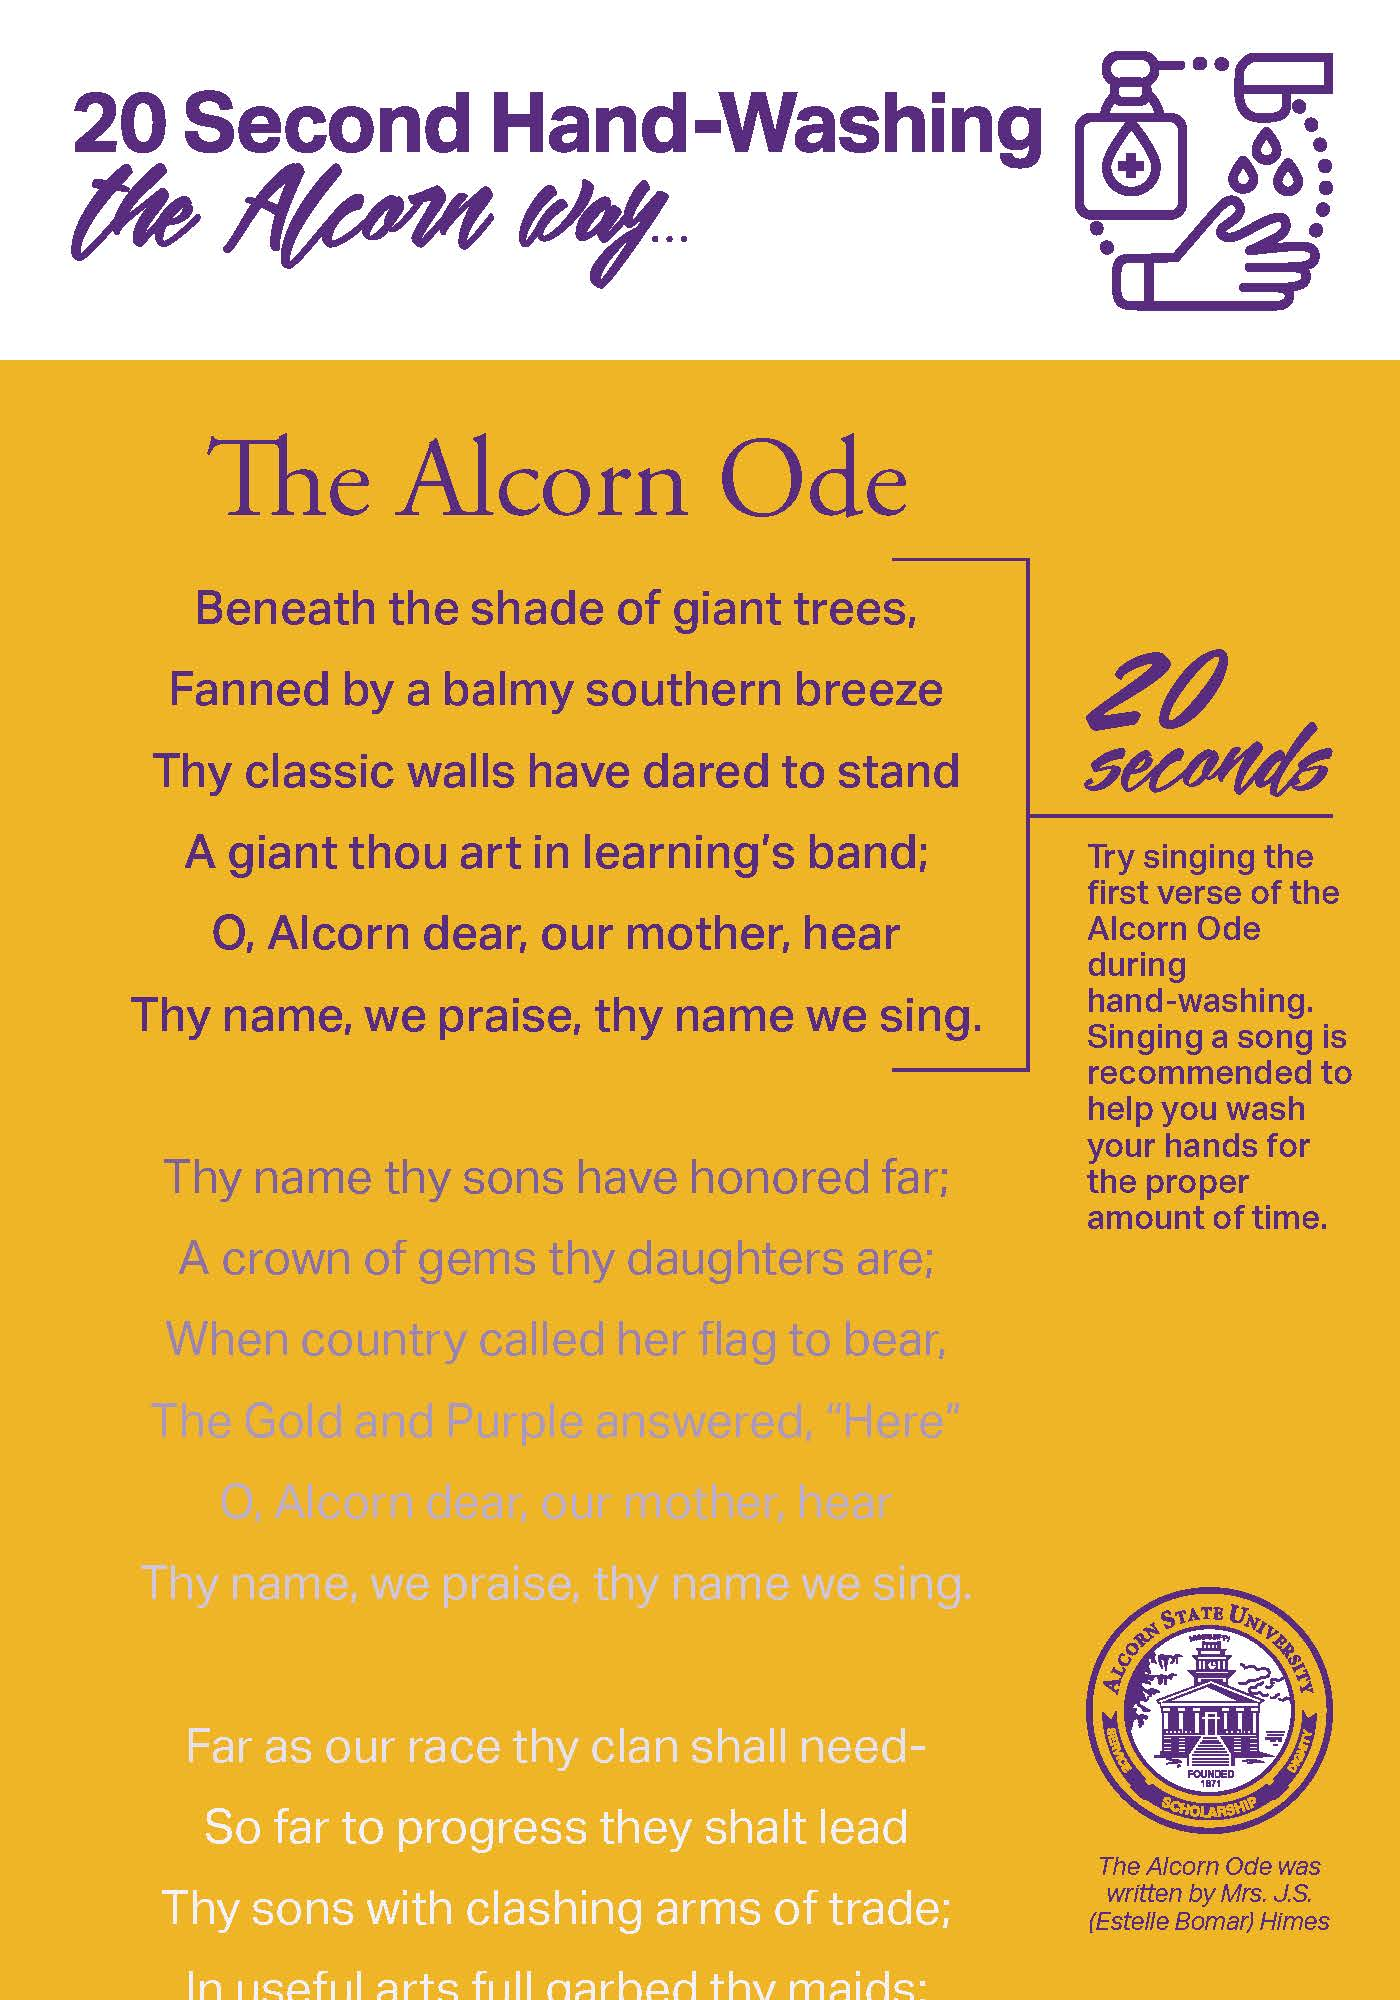 20 Second Hand-Washing the Alcorn Way...e Alcorn Ode.Beneath the shade of giant trees, Fanned by a balmy southern breeze Thy classic walls have dared to stand A giant thou art in learning's band; O, Alcorn dear, our mother, hear Thy name, we praise, thy name we sing. 20 seconds = Try singing the first verse of the Alcorn Ode during hand-washing. Singing a song is recommended to help you wash your hands for the proper amount of time.